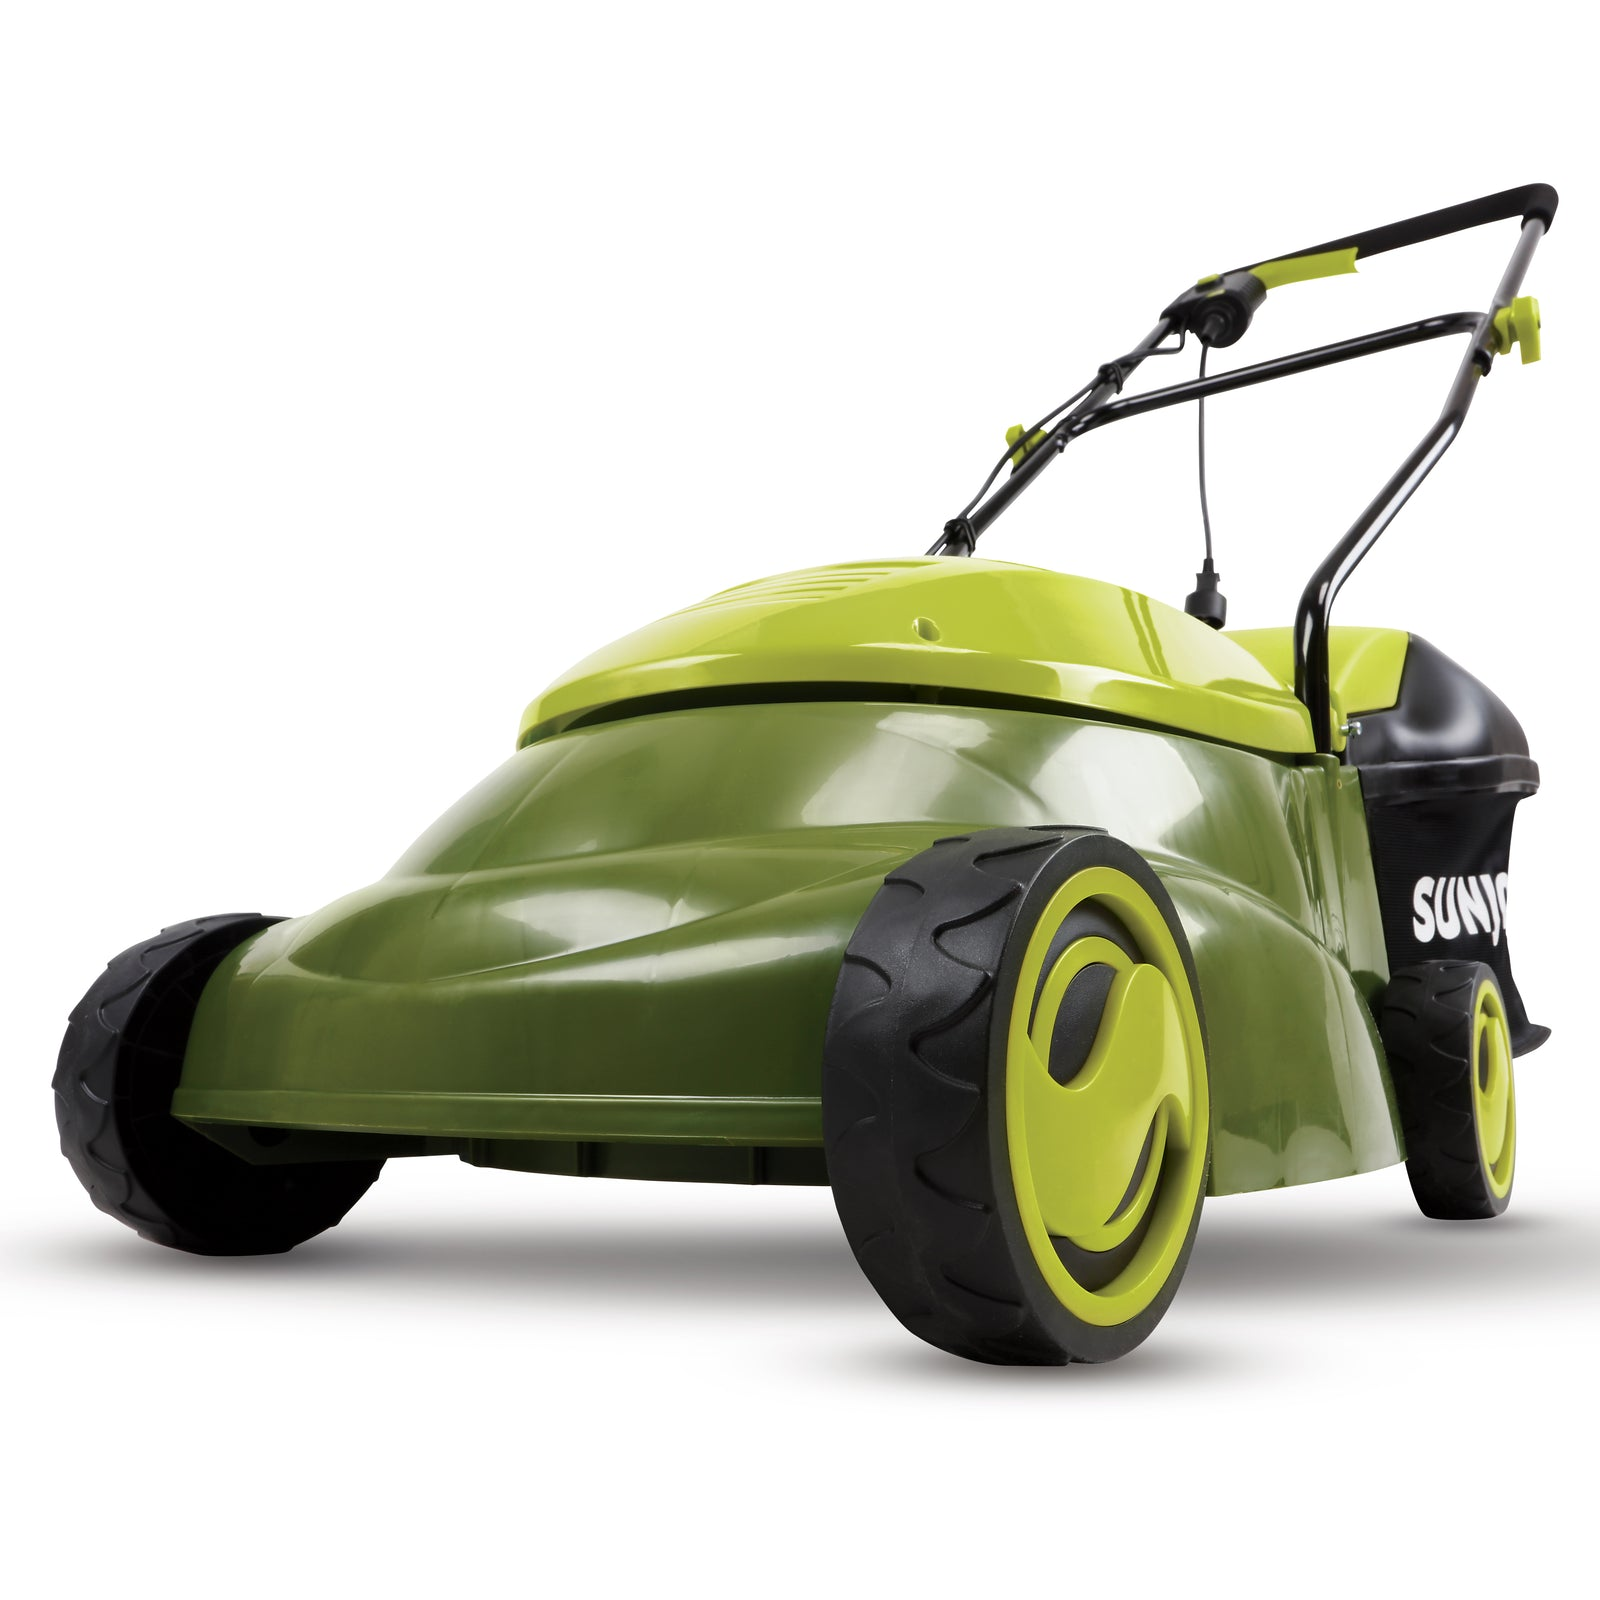 Sun Joe 14 Inch Electric Lawn Mower MJ401E